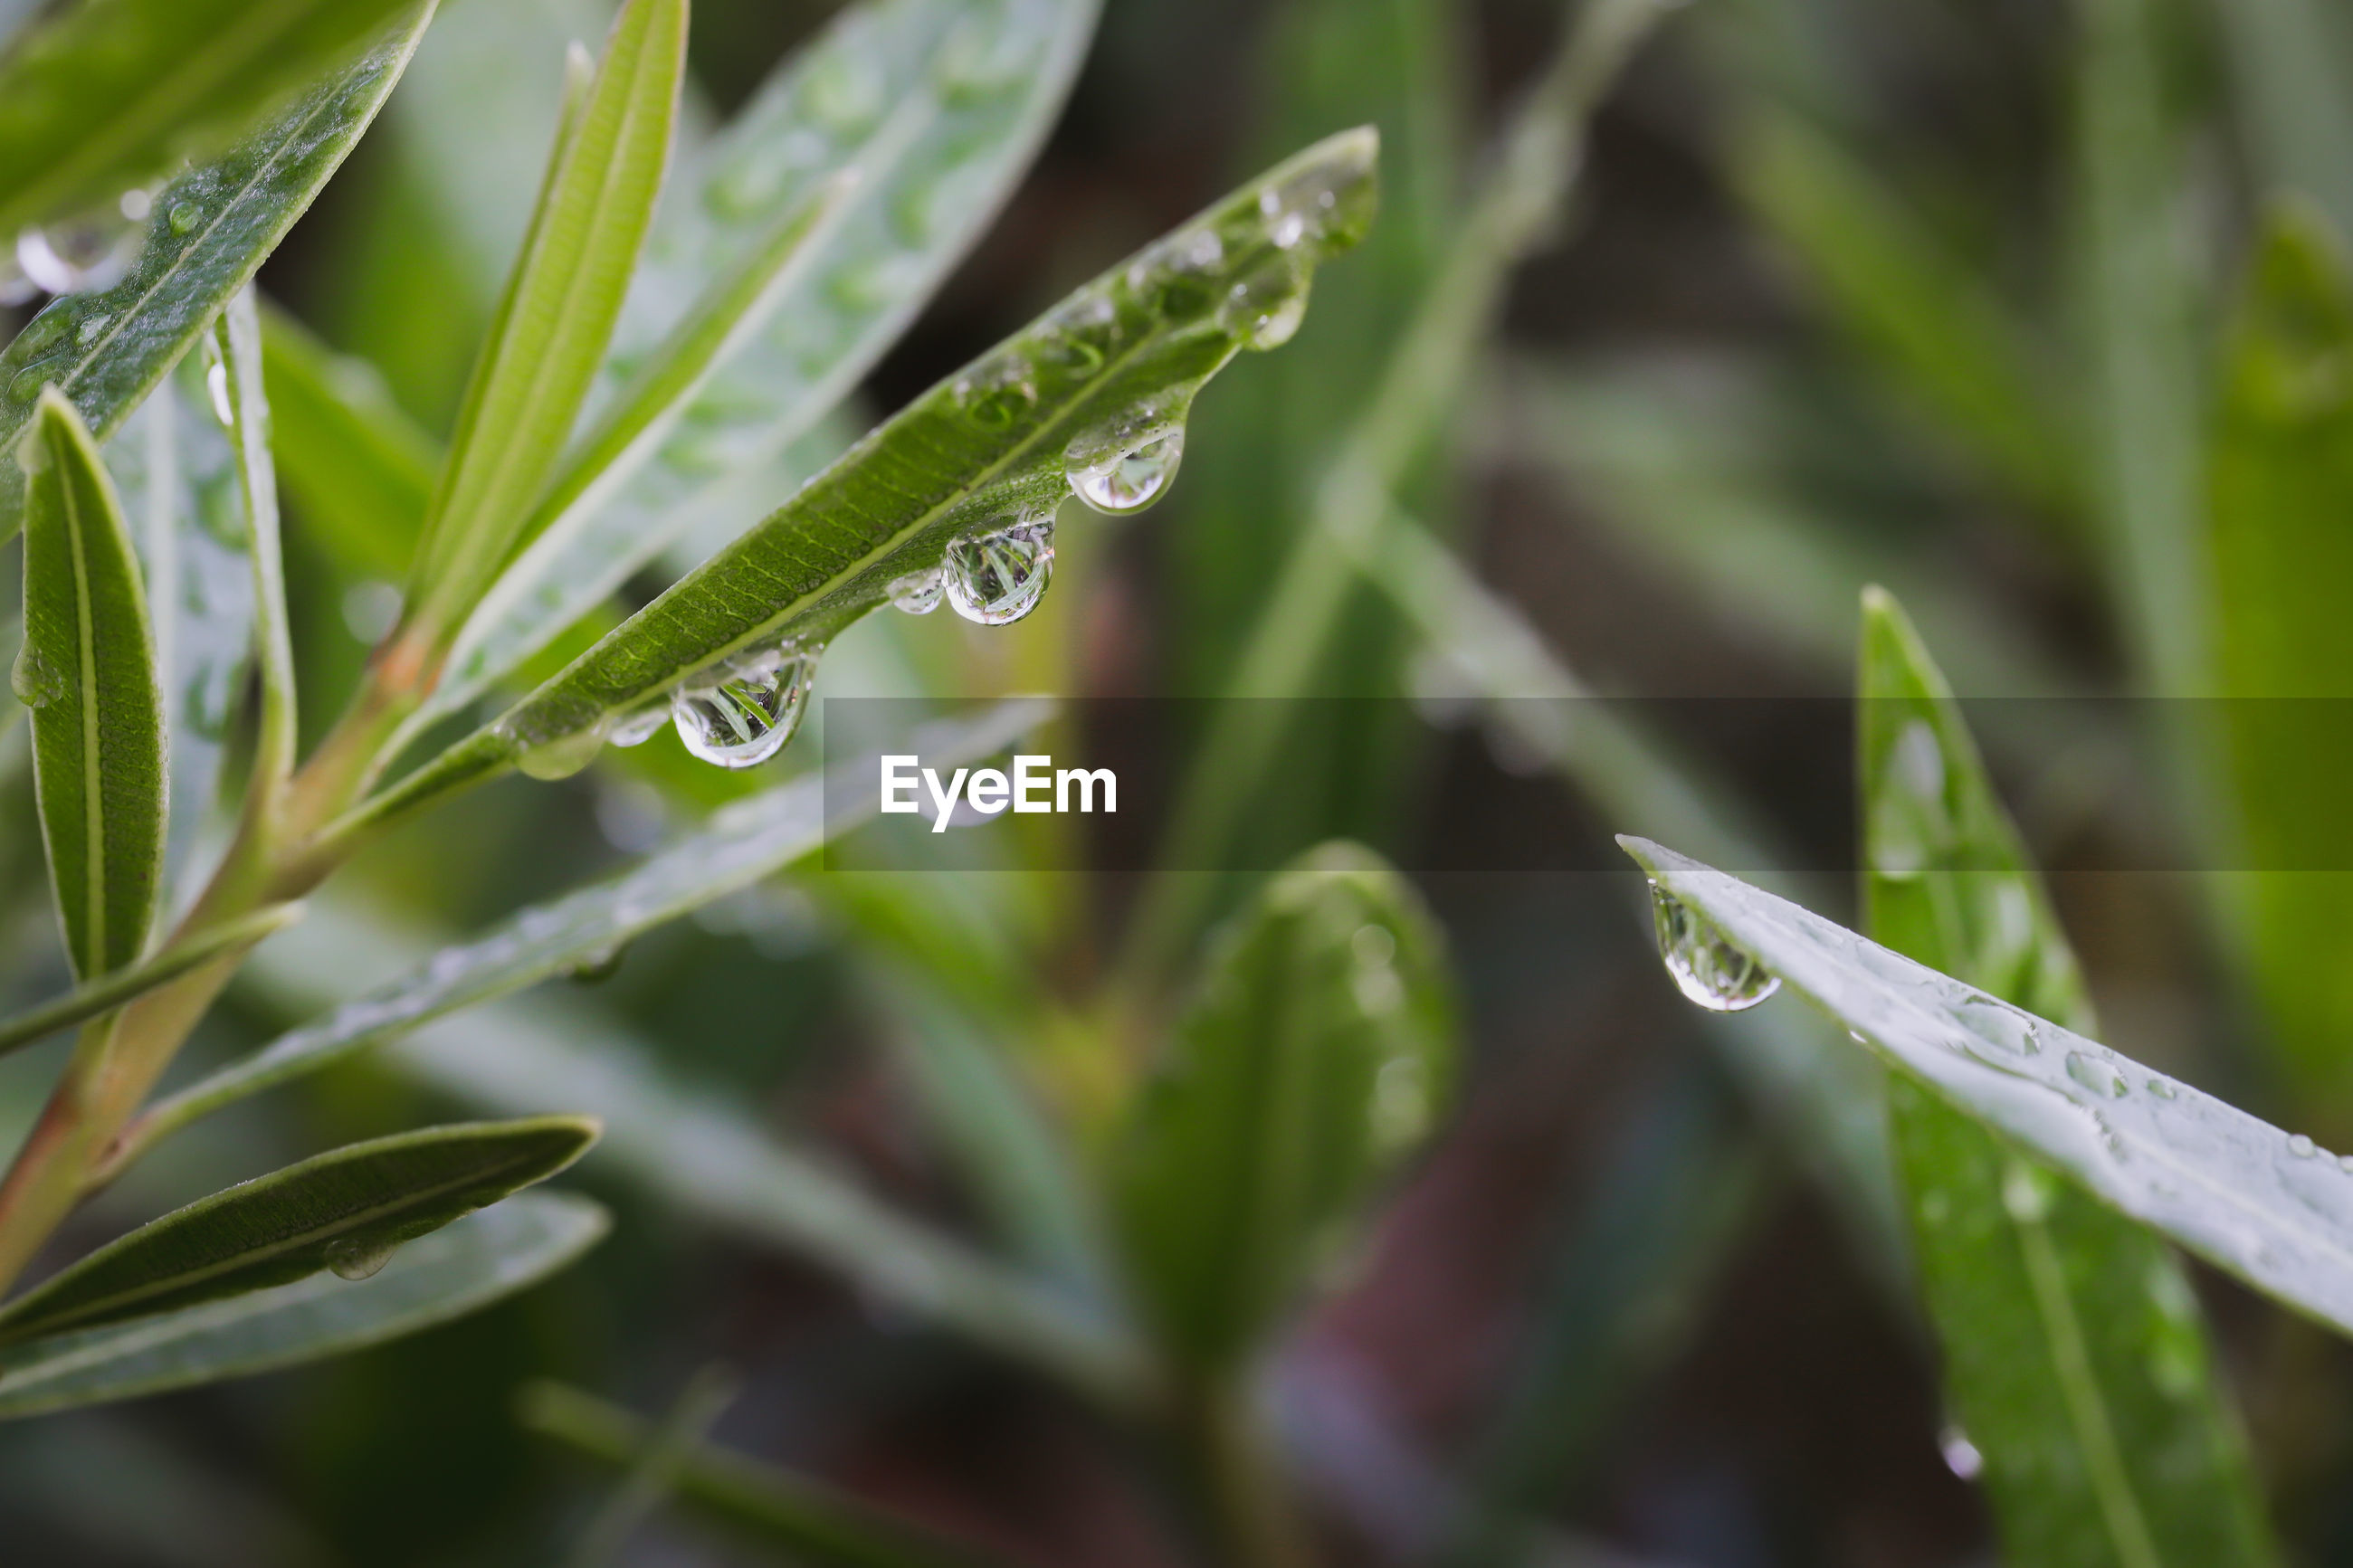 Dew after rain on the leaves in the morning